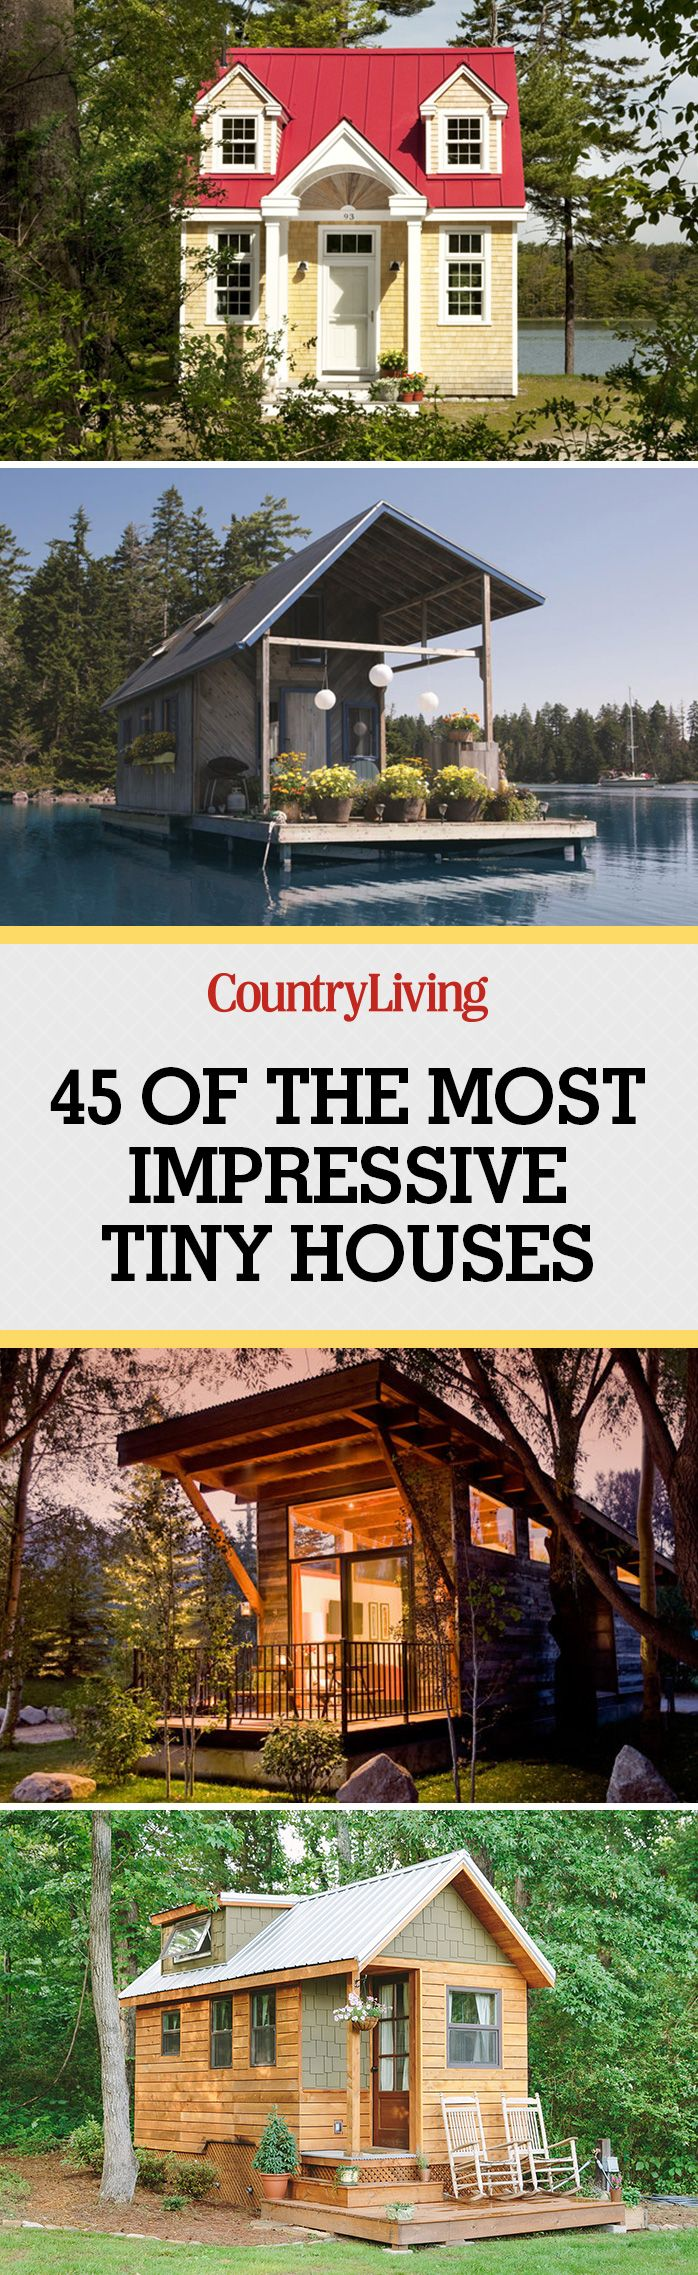 65 Best Tiny Houses 2017 - Small House Pictures \u0026 Plans